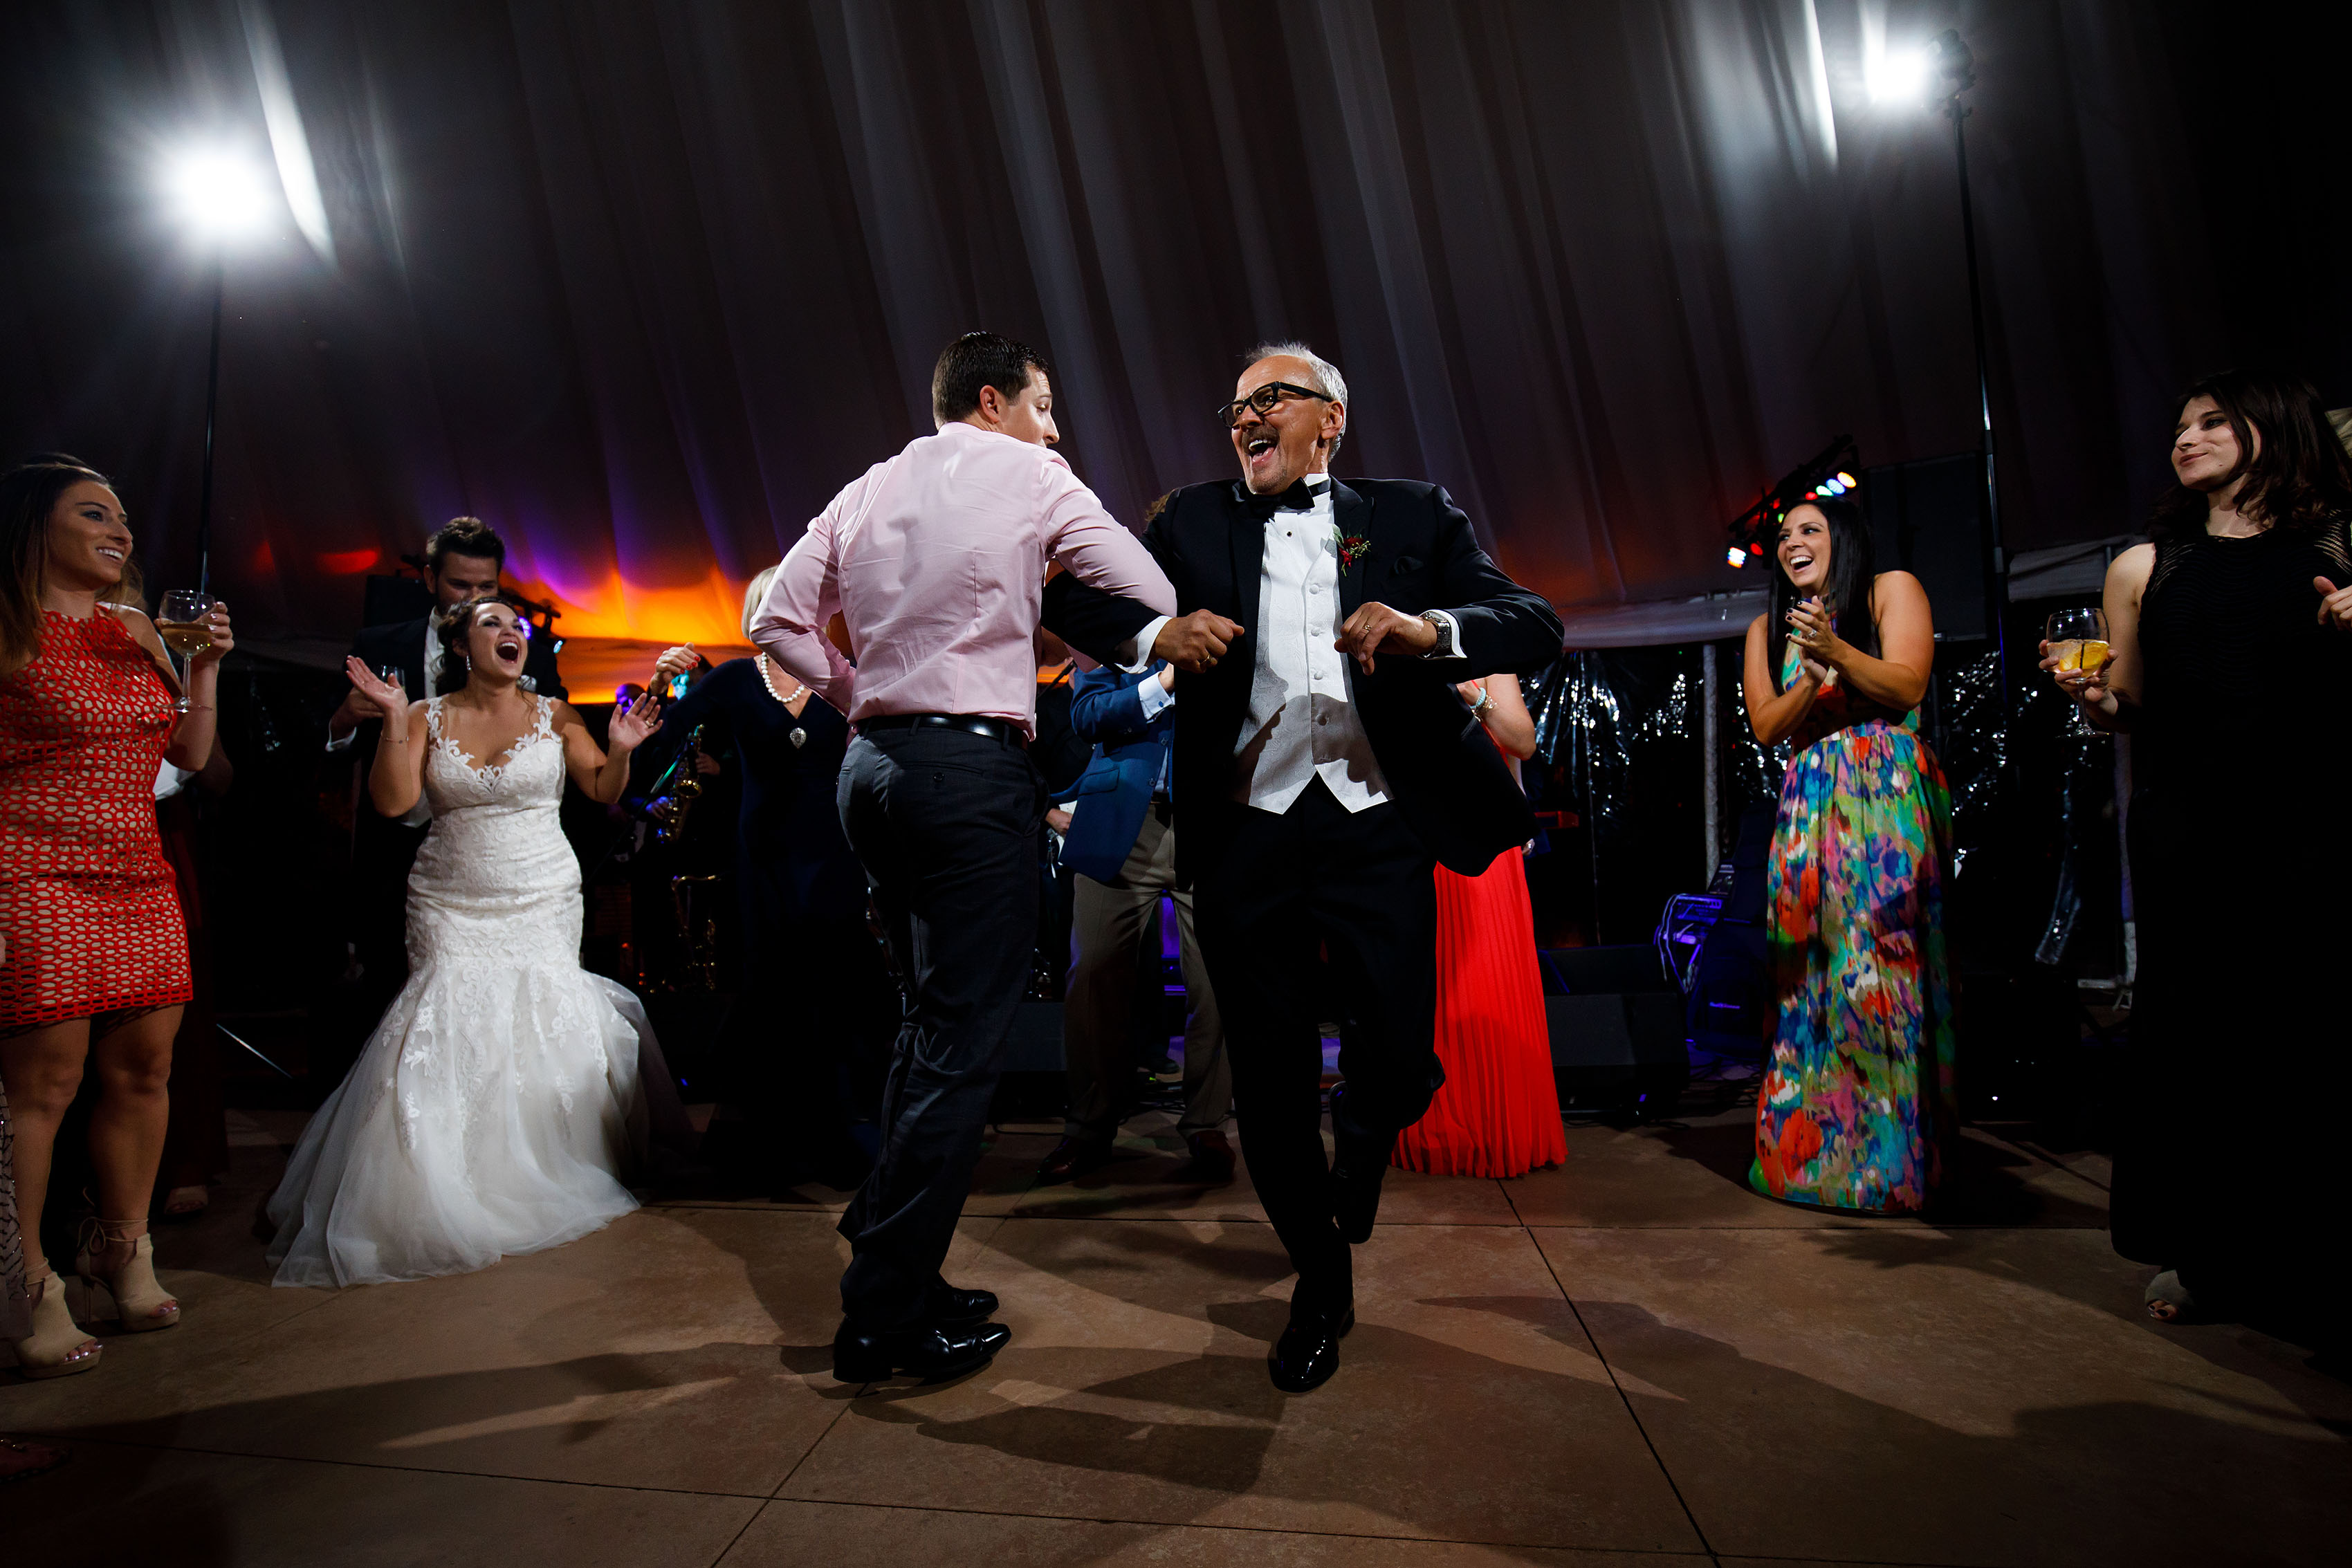 Guests dance together at Melissa and Jordan's wedding